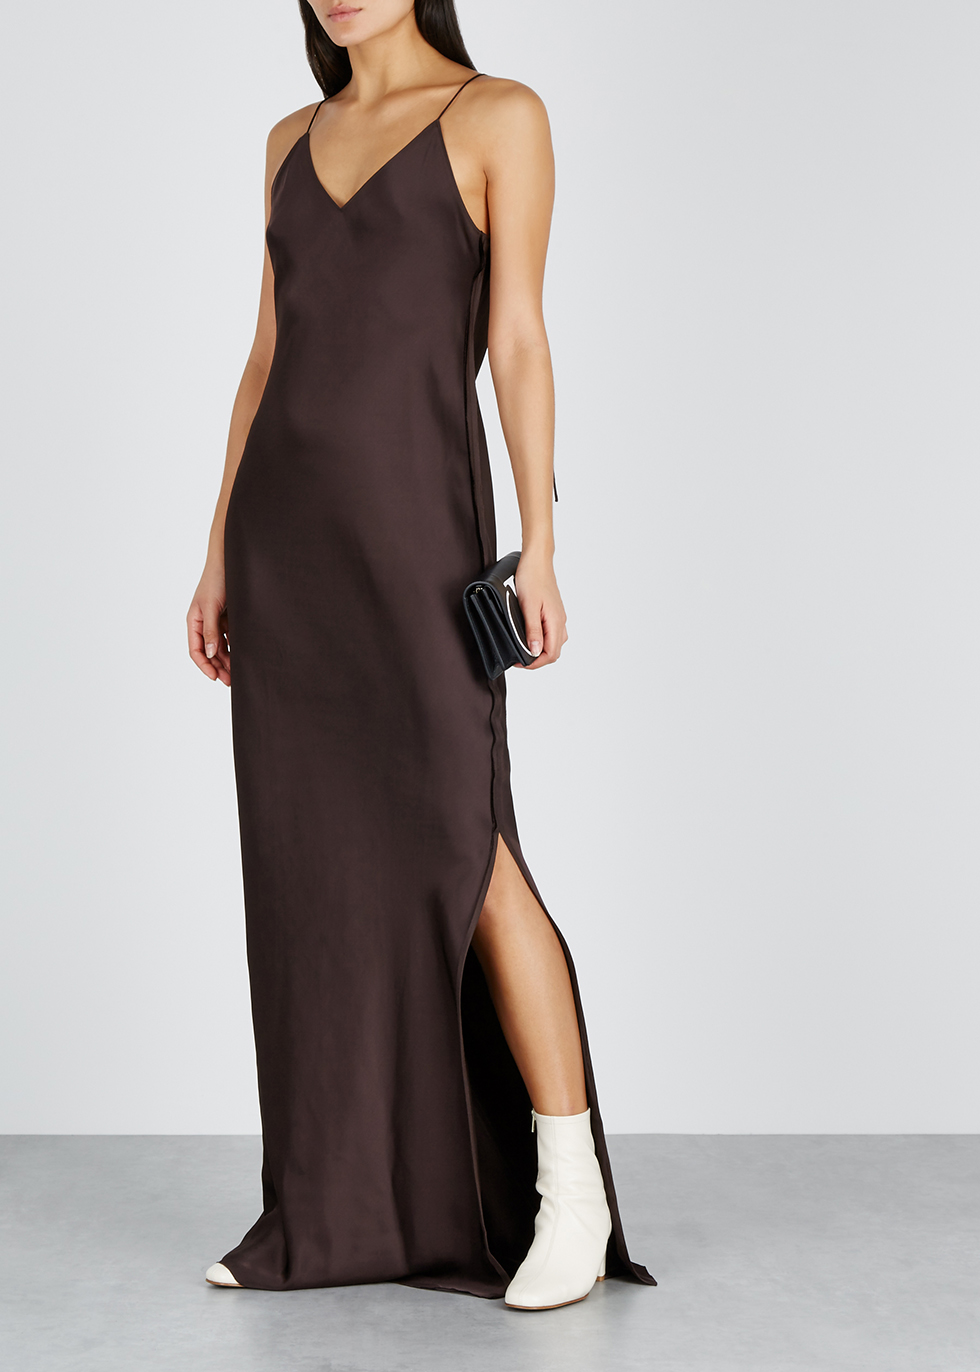 6d20d3717c90 Helmut Lang Dark brown satin maxi slip dress - Harvey Nichols